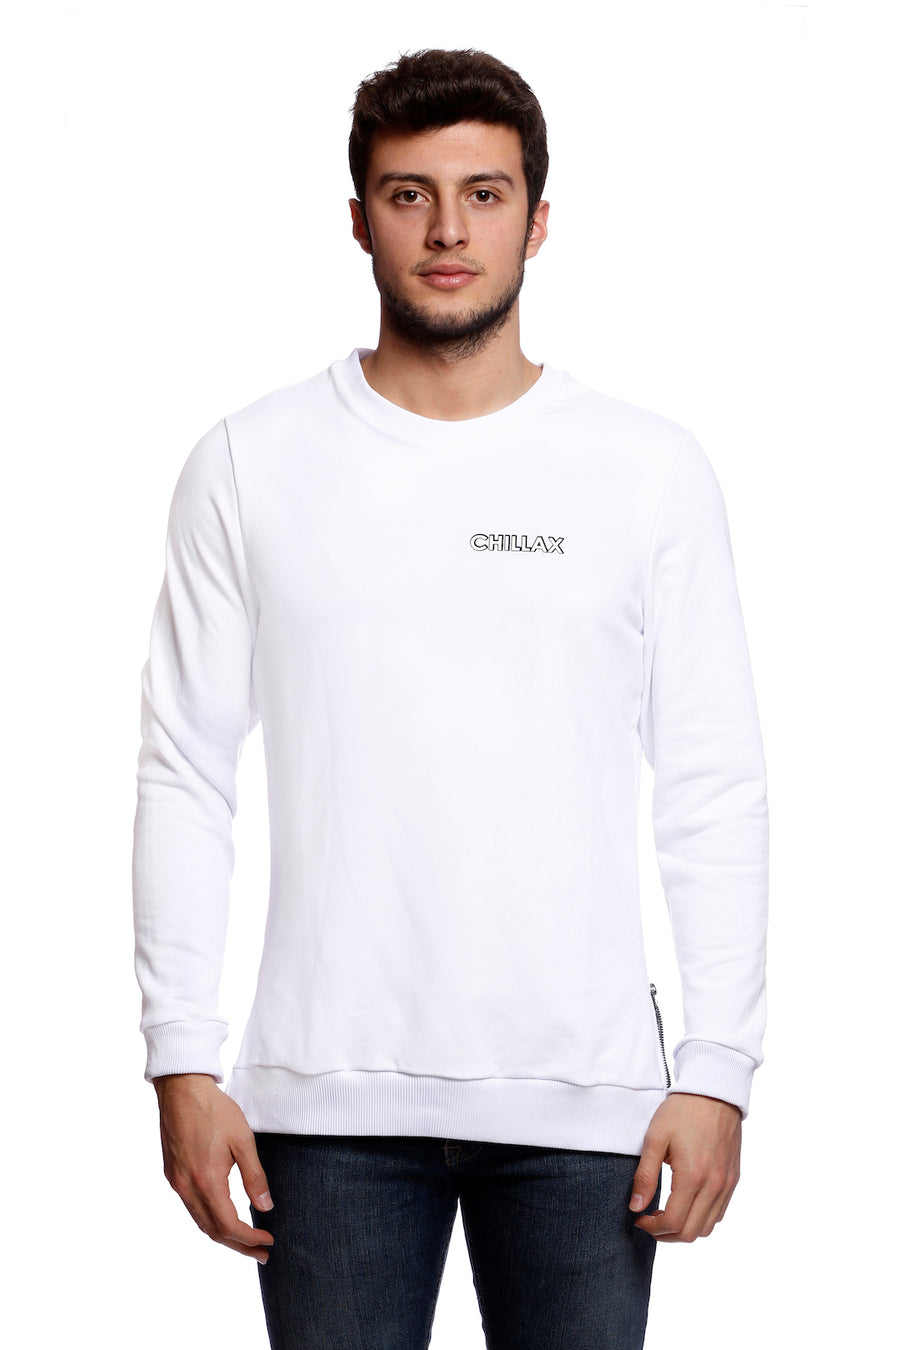 Chillax Sweatshirt